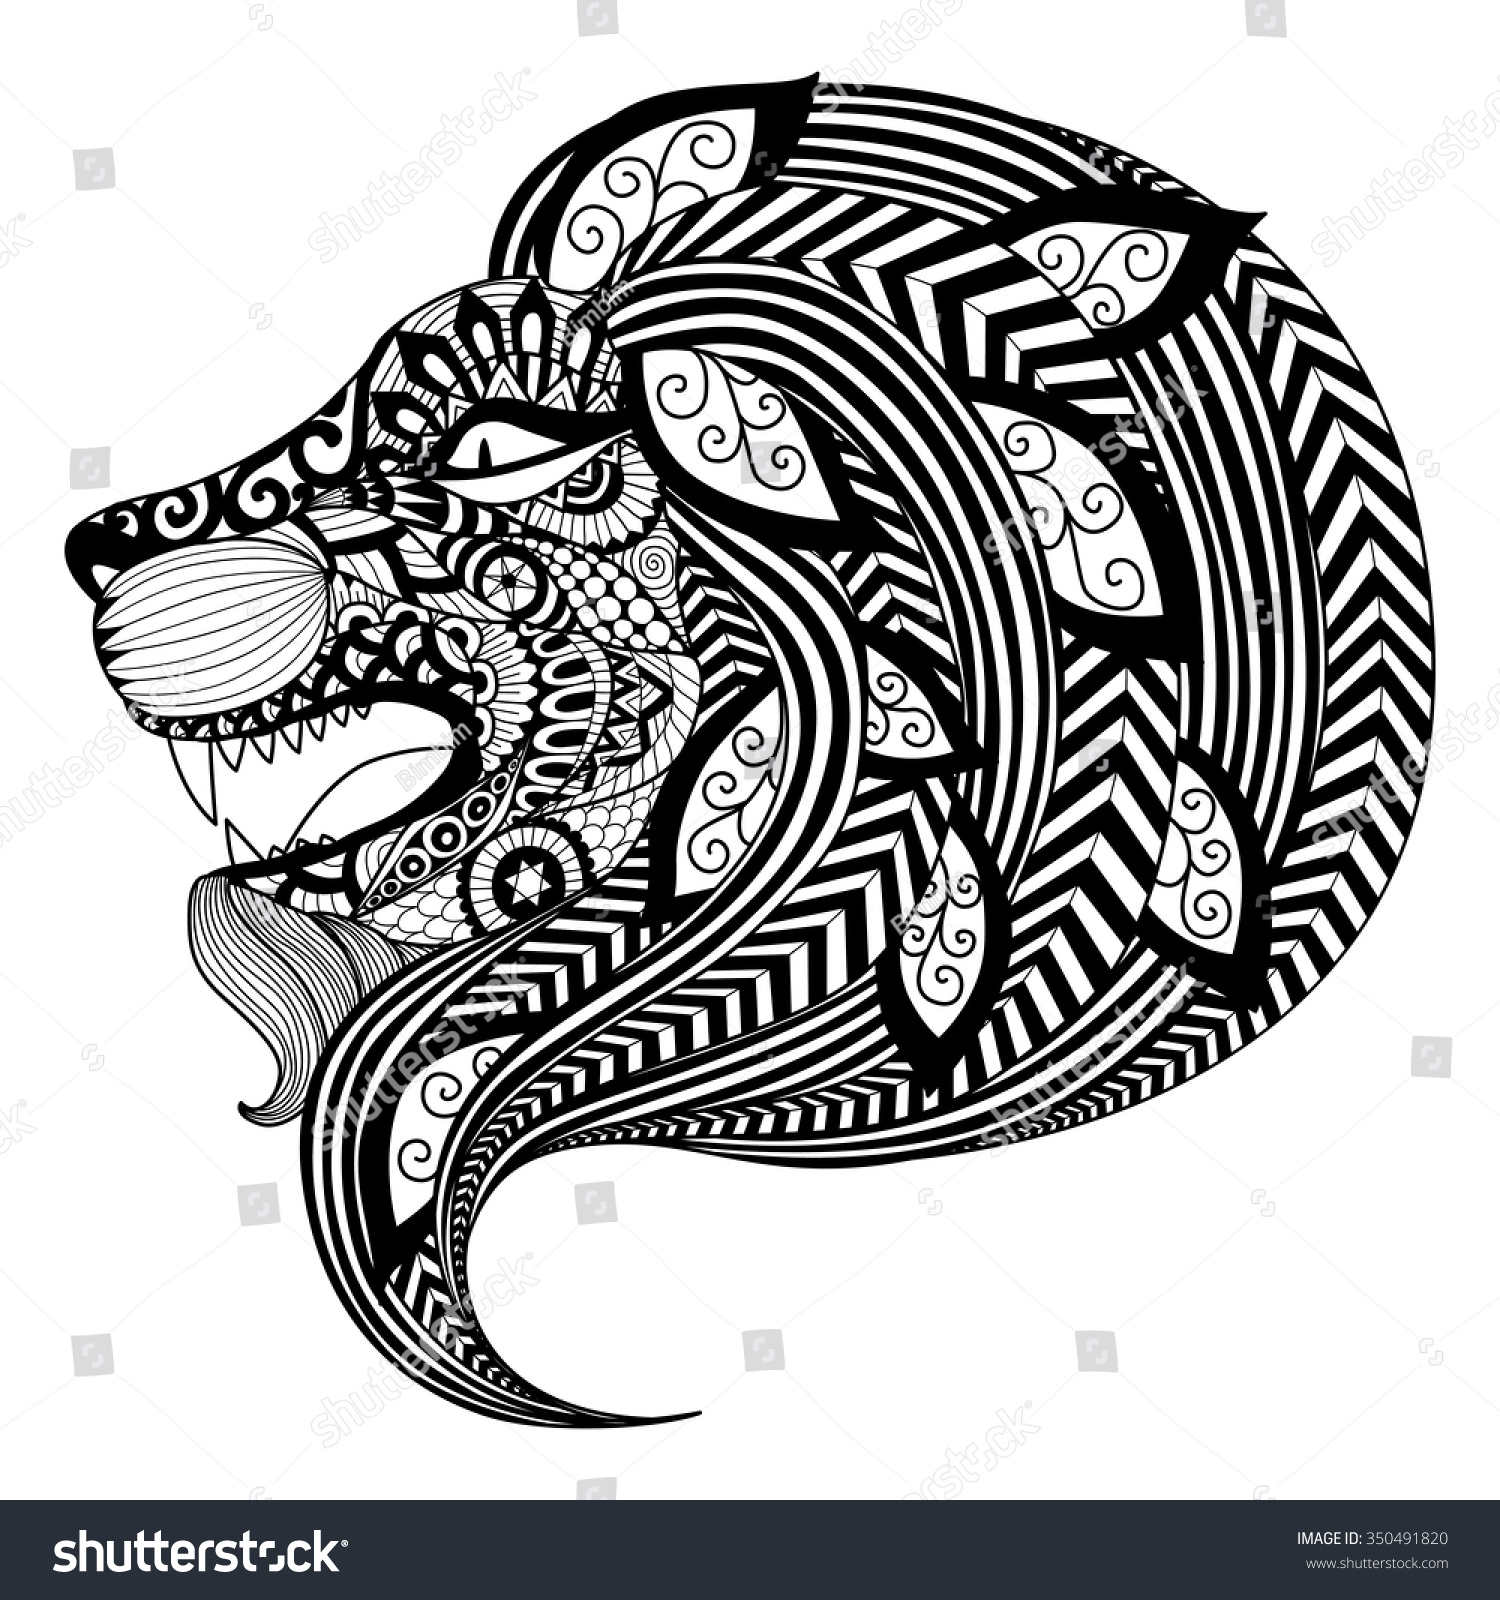 Drawing Zentangle Angry Lion Coloring Book Stock Vector (Royalty ...